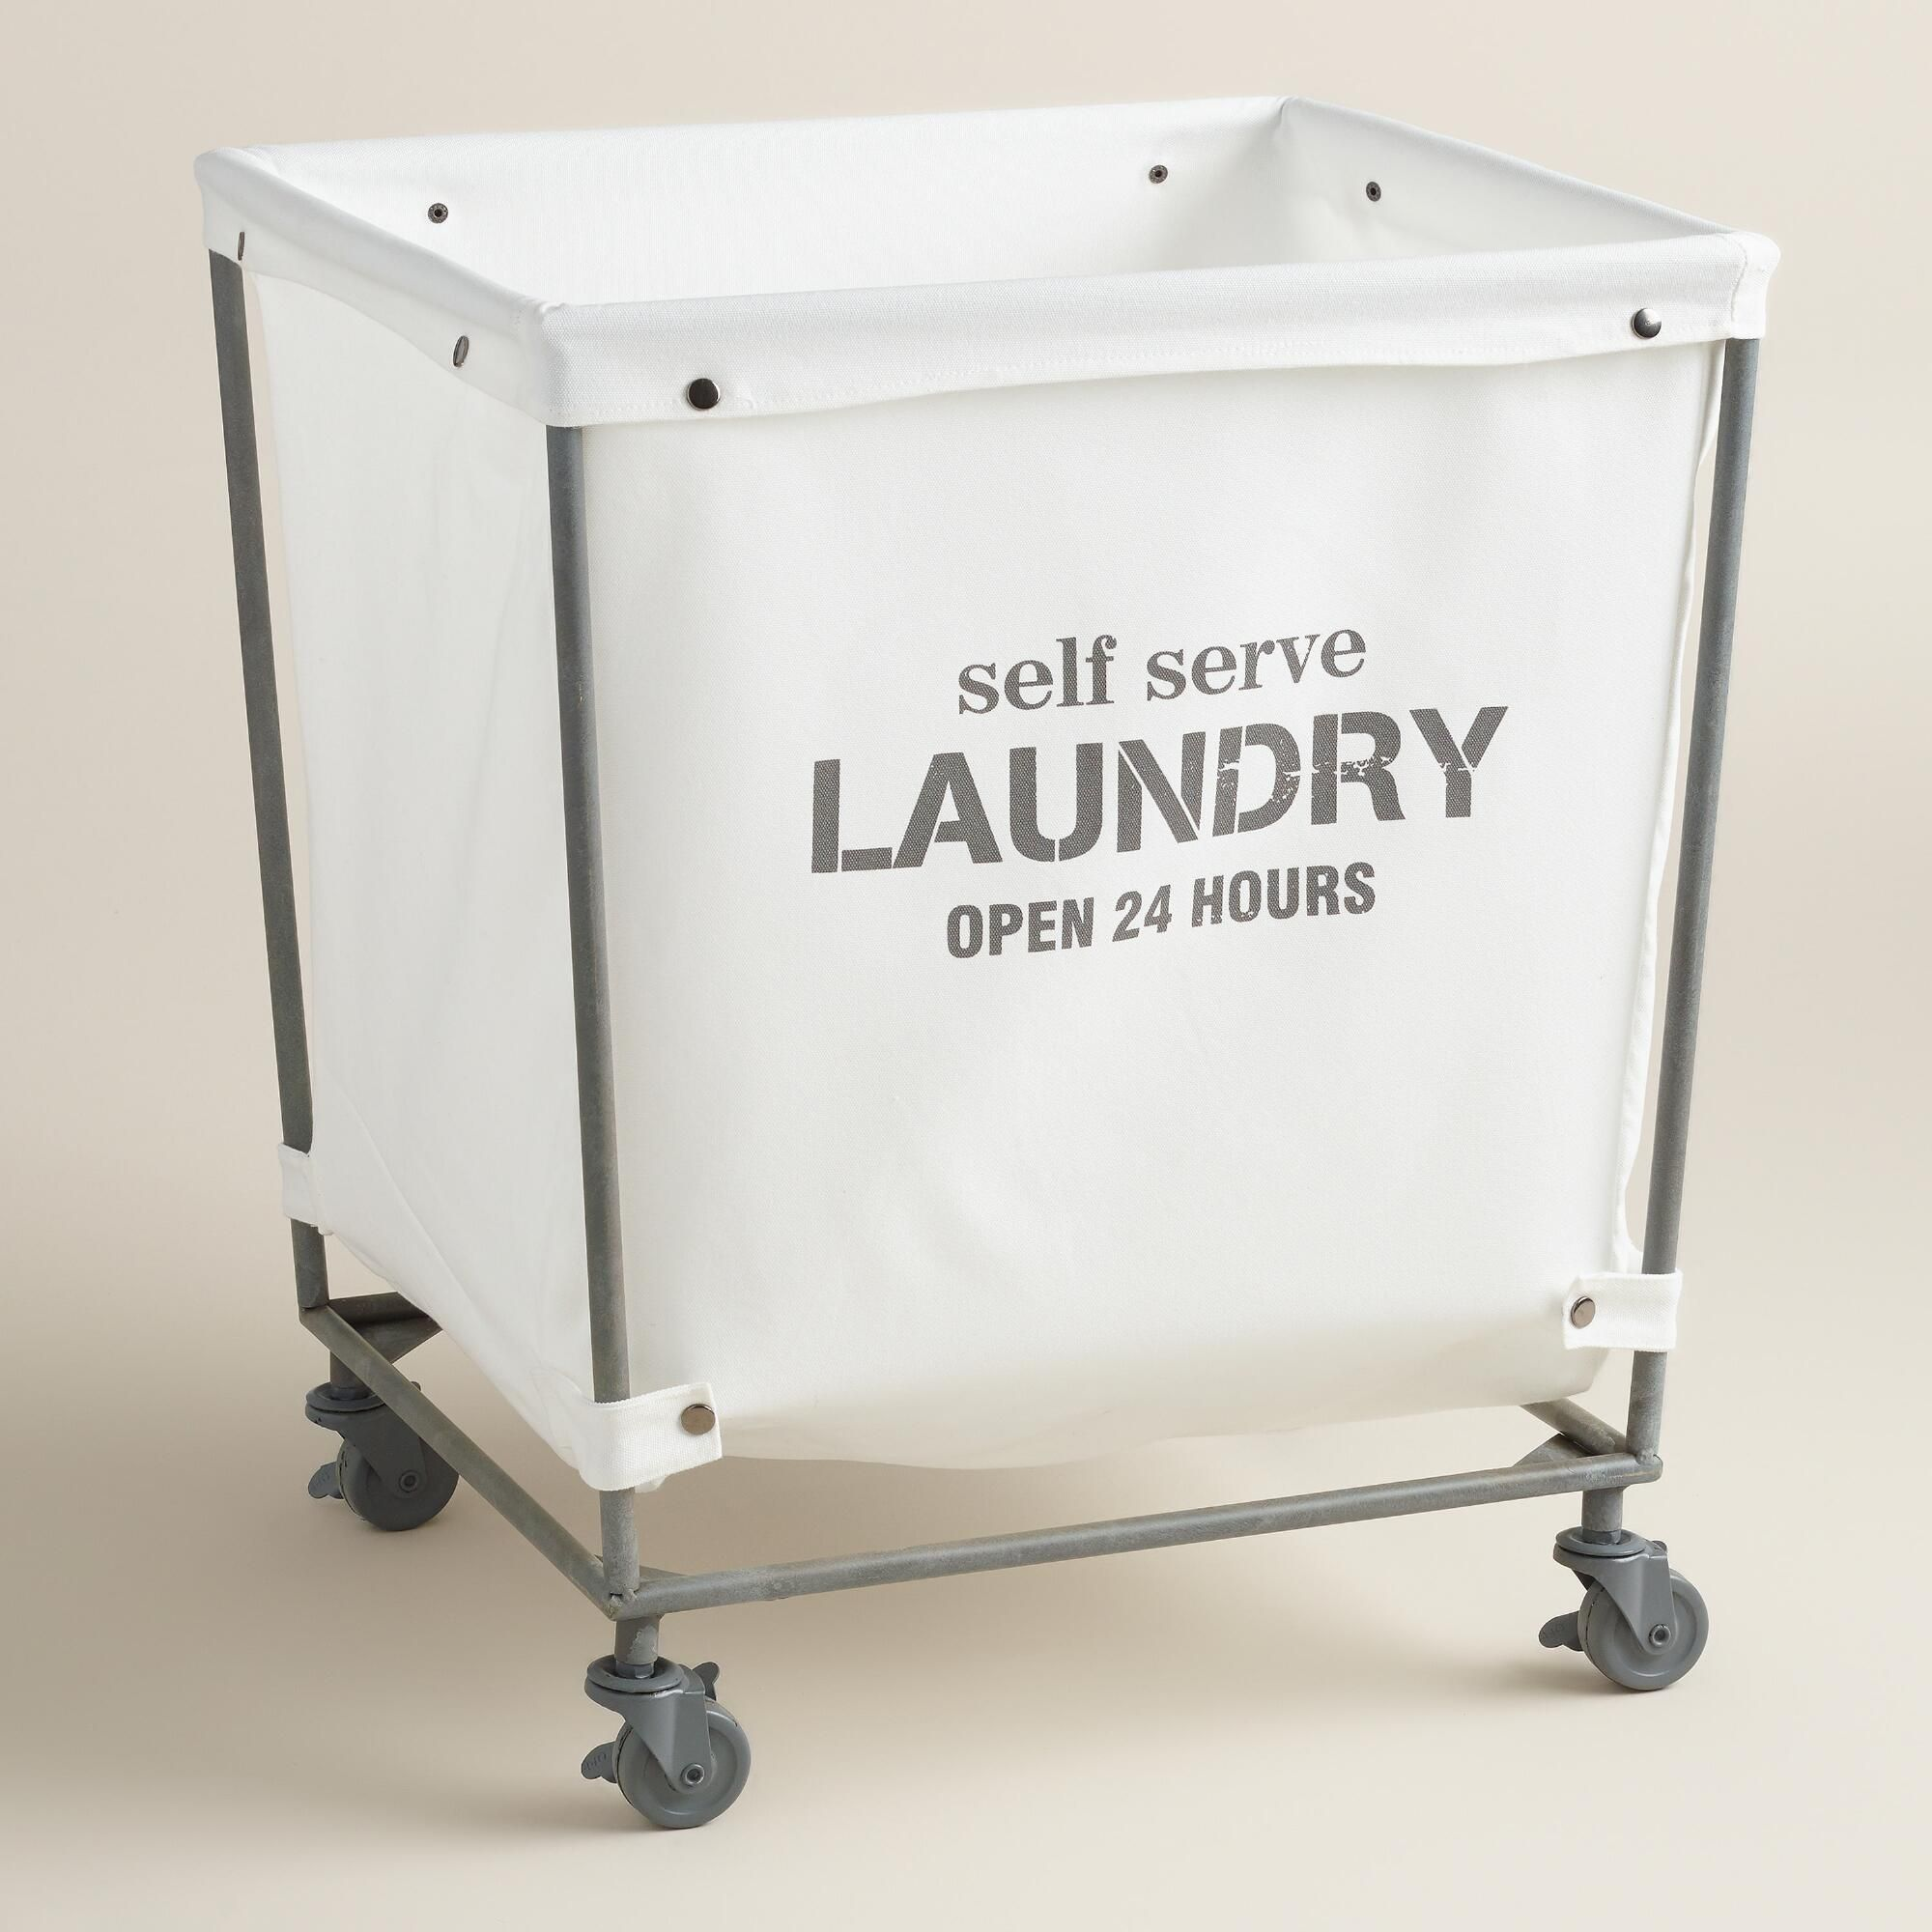 Laundry Bin With Wheels A Chic Take On The Classic Laundromat Cart Our Rolling